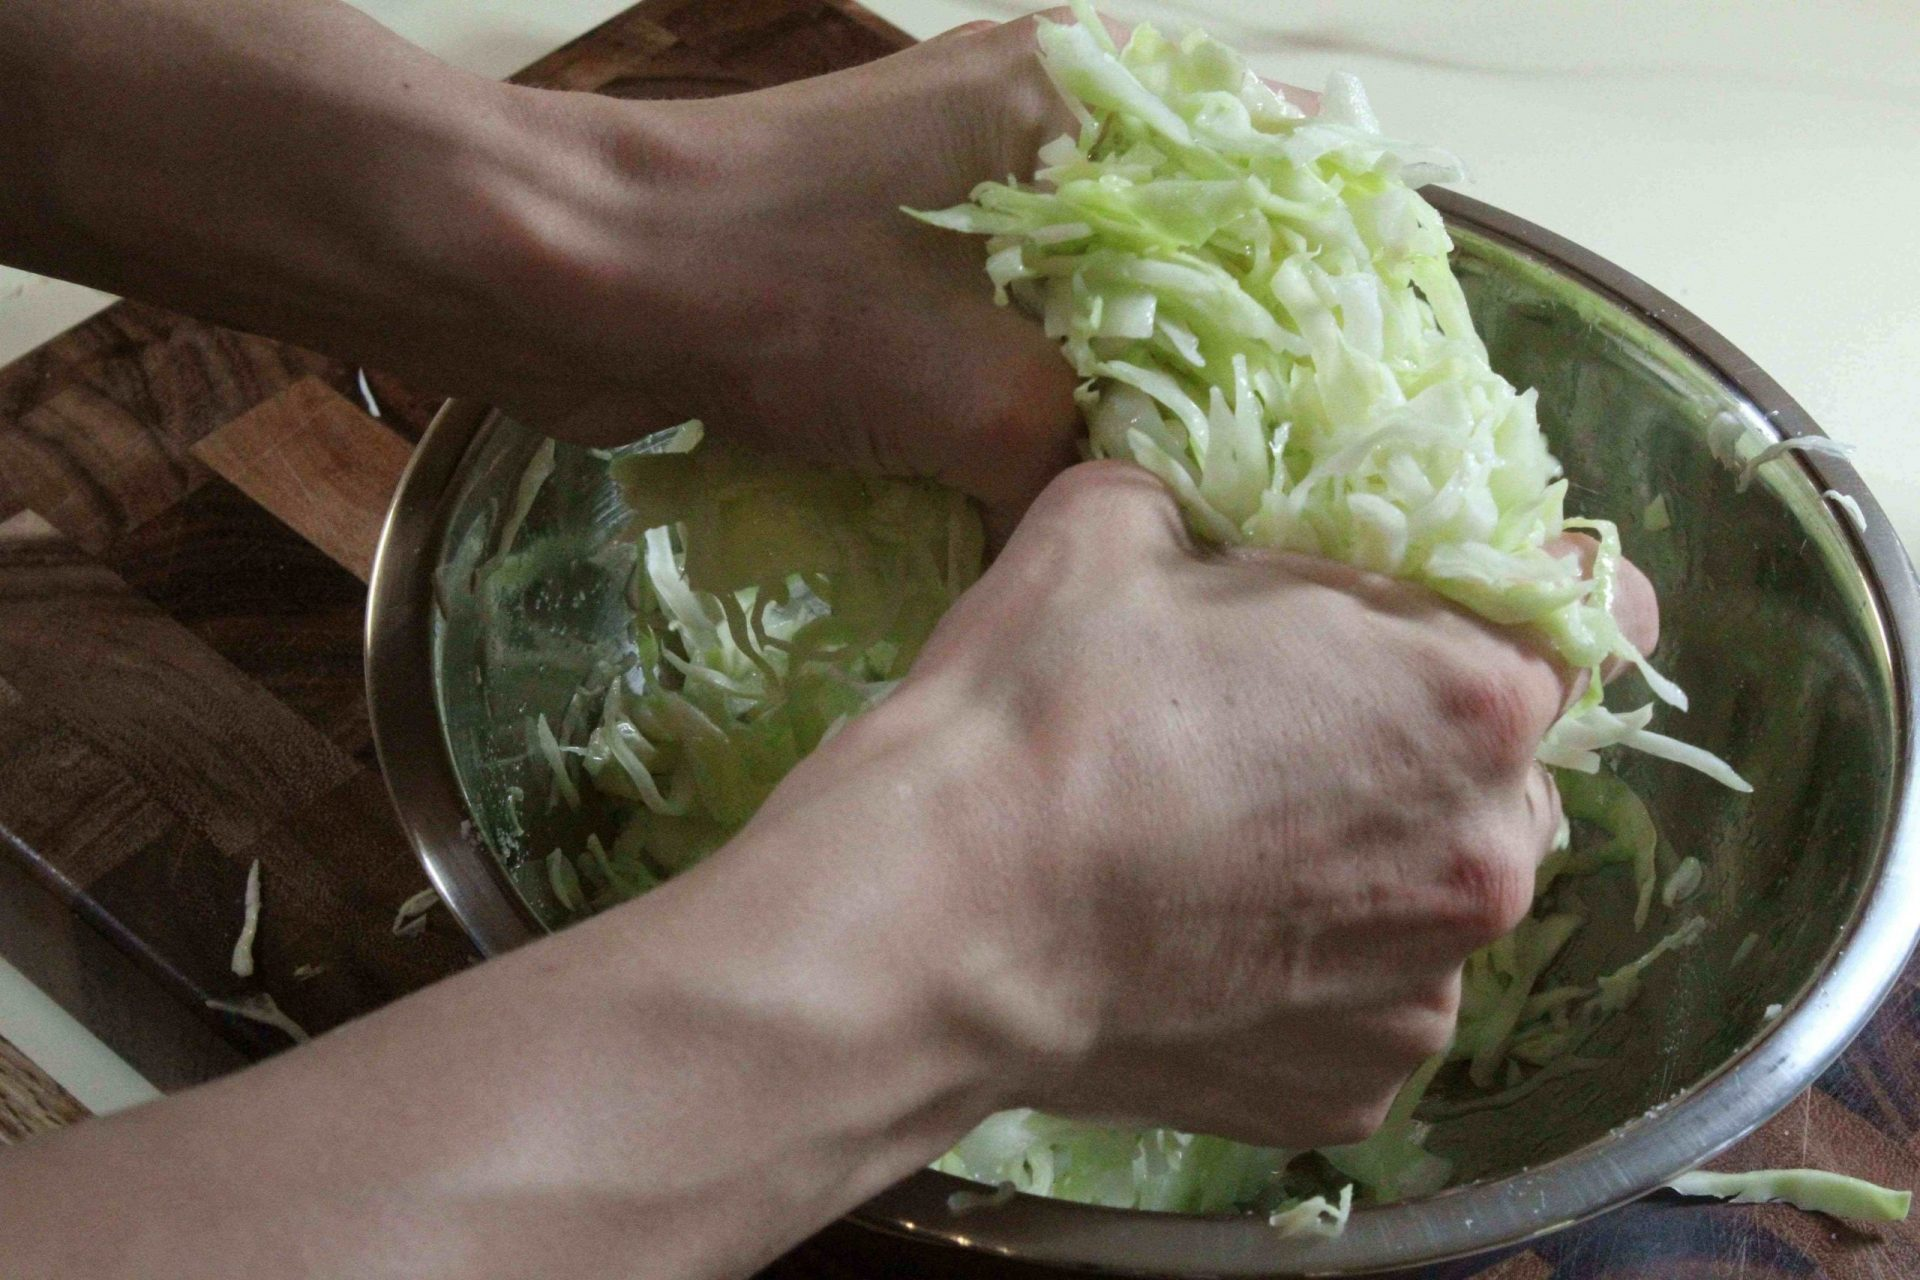 Squeezing liquid out of salted cabbage